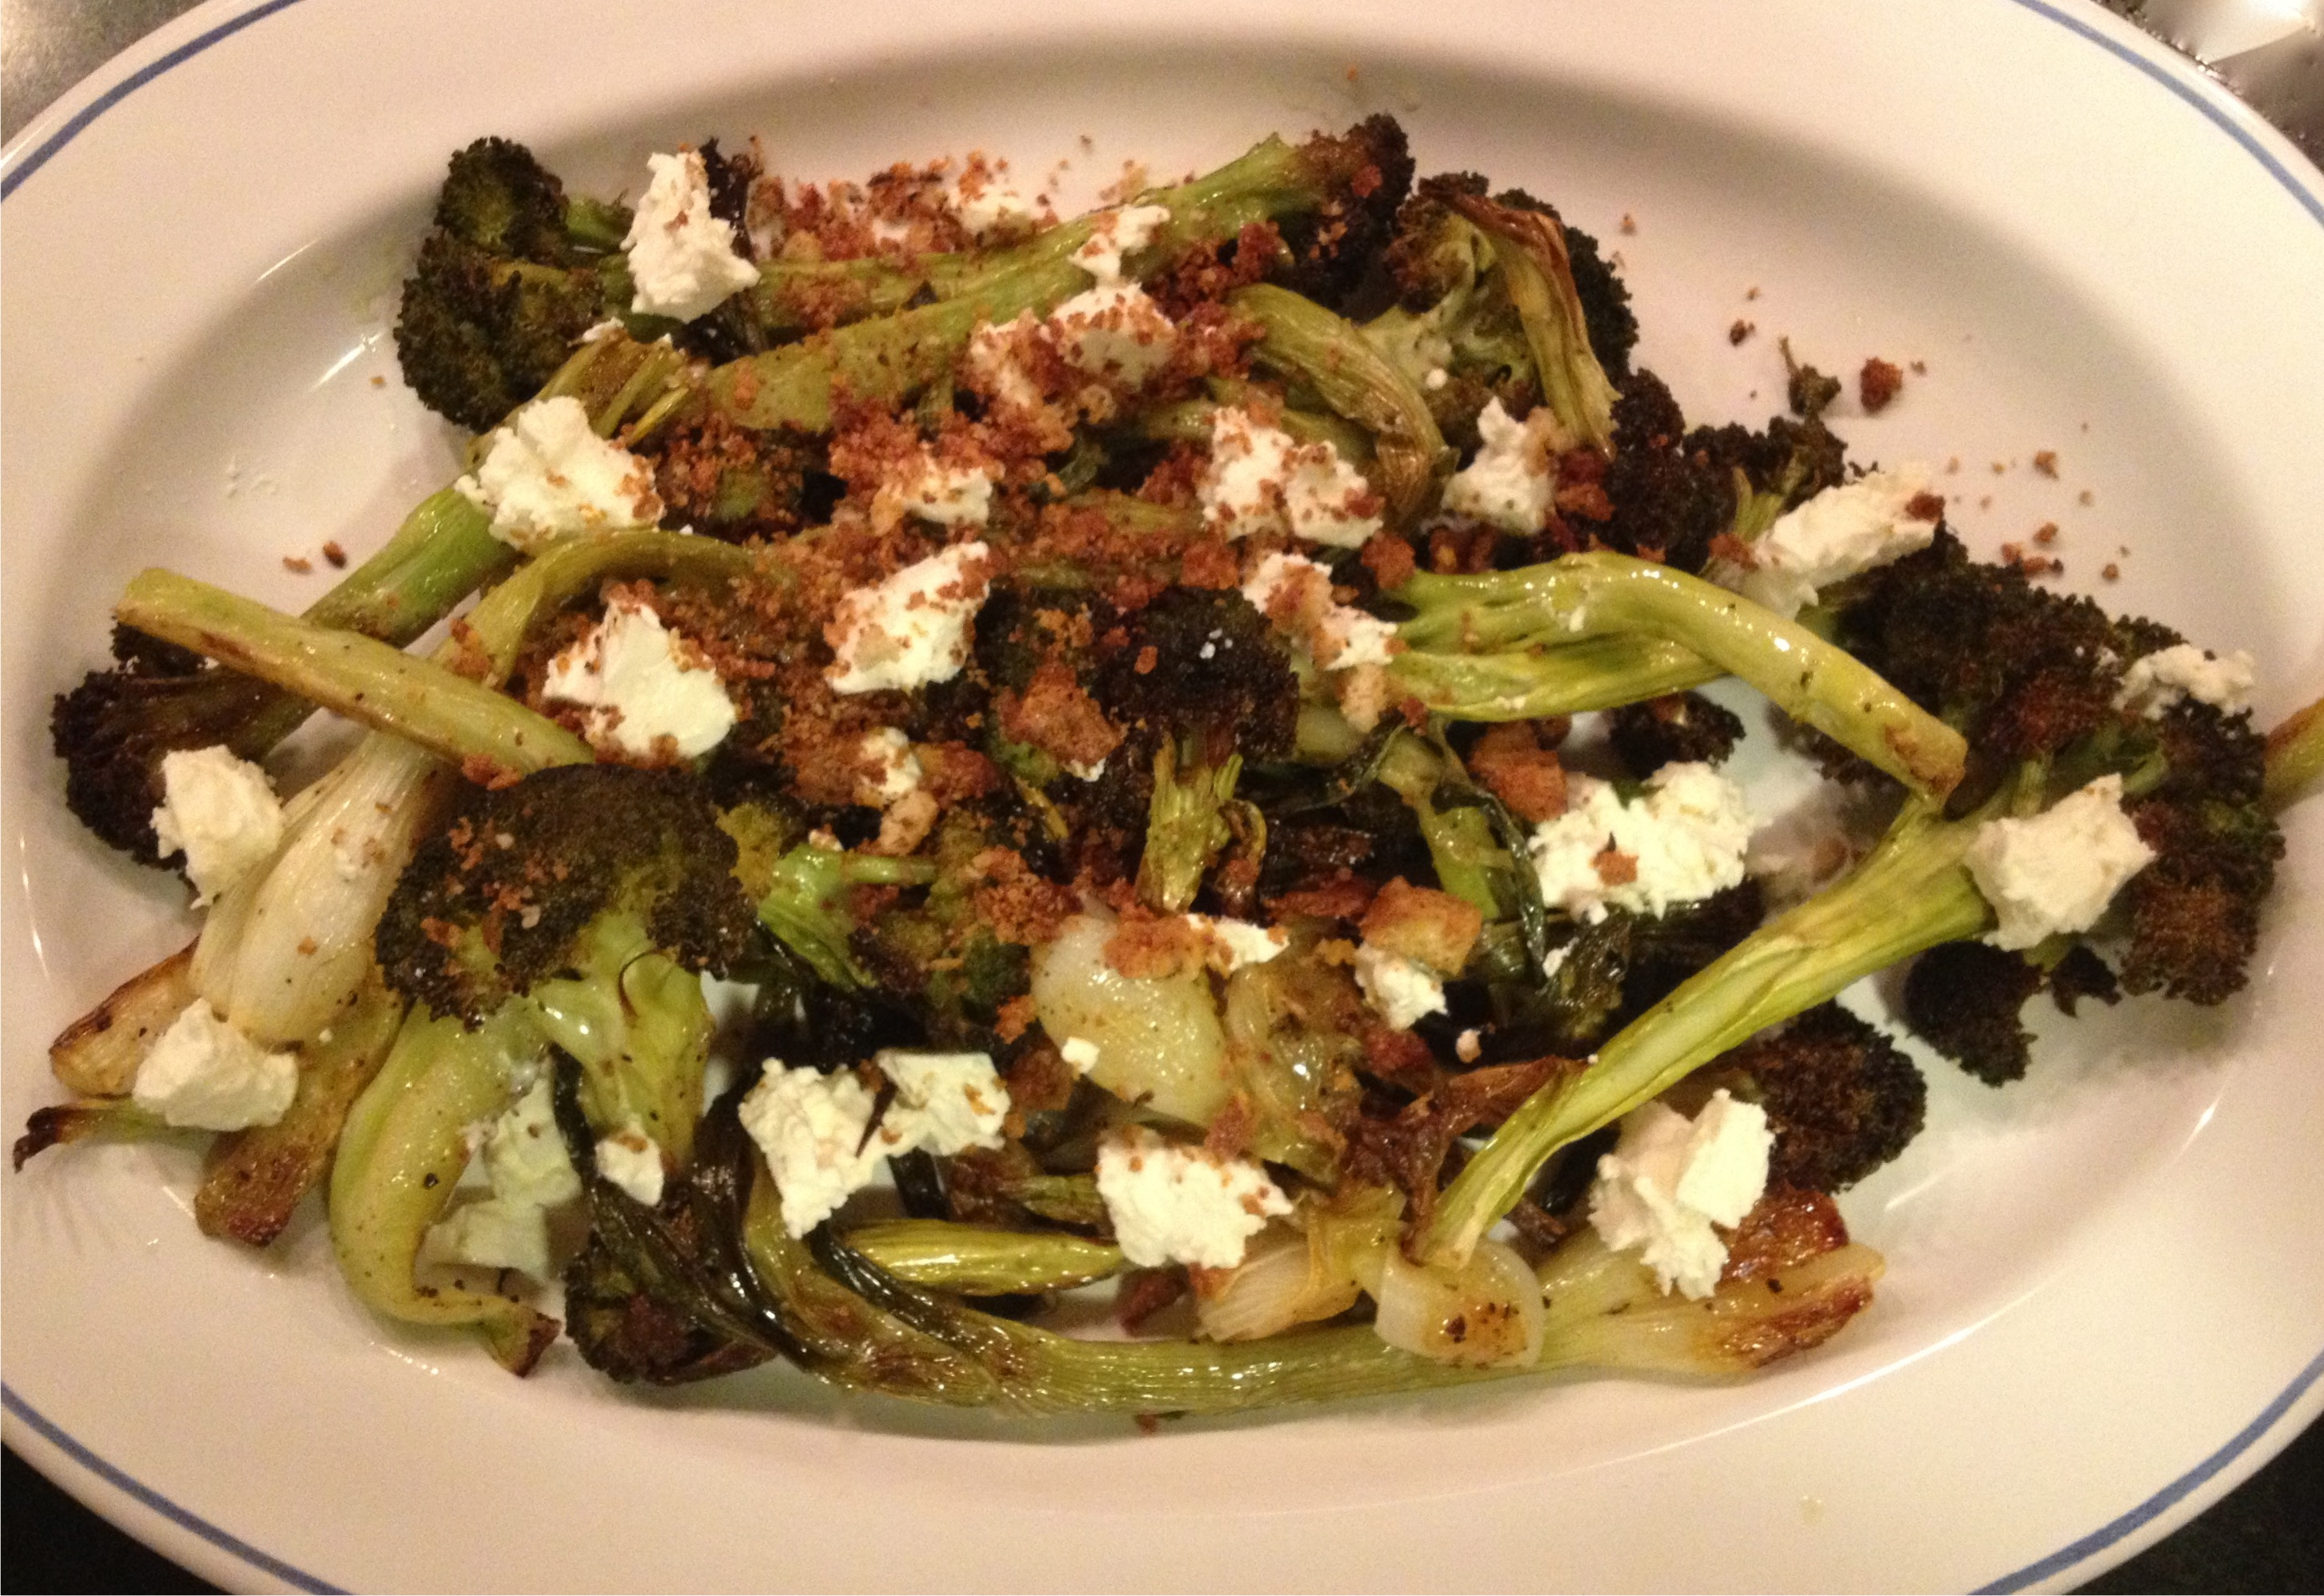 Roasted broccoli and spring onions with feta and toasted bread crumbs on a white French platter.